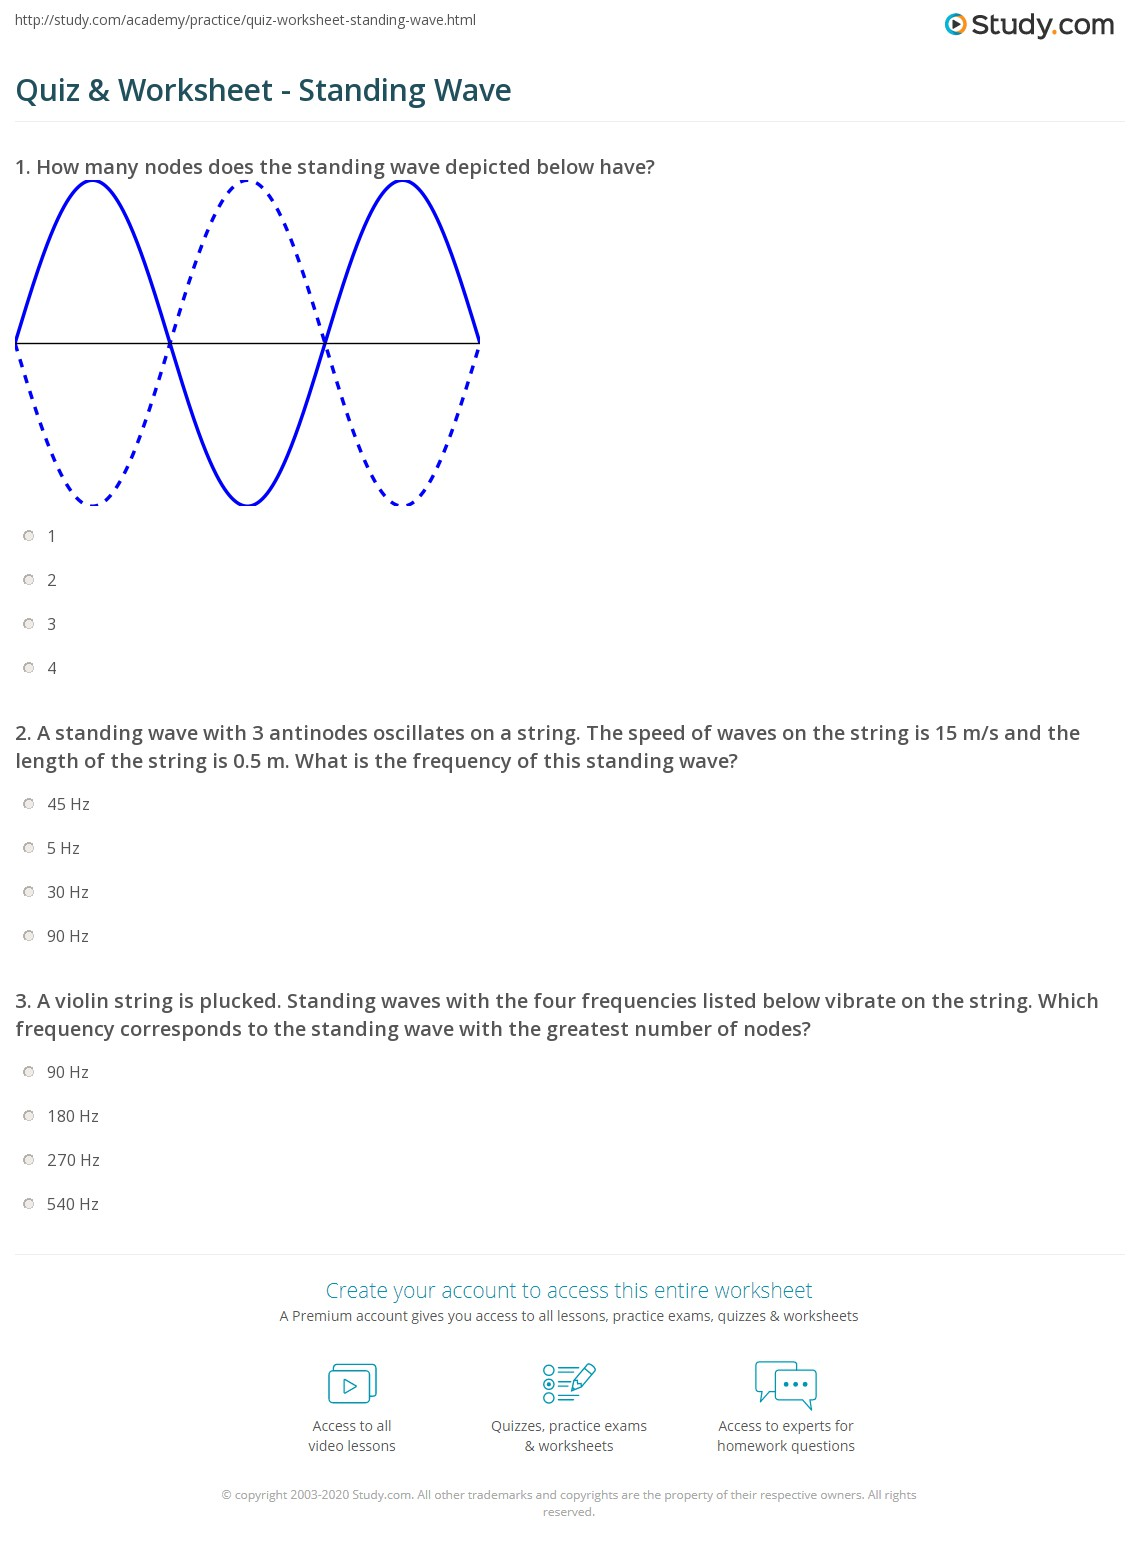 worksheet Sound Waves Worksheet quiz worksheet standing wave study com a with 3 antinodes oscillates on string the speed of waves is 15 ms and length 0 5 m